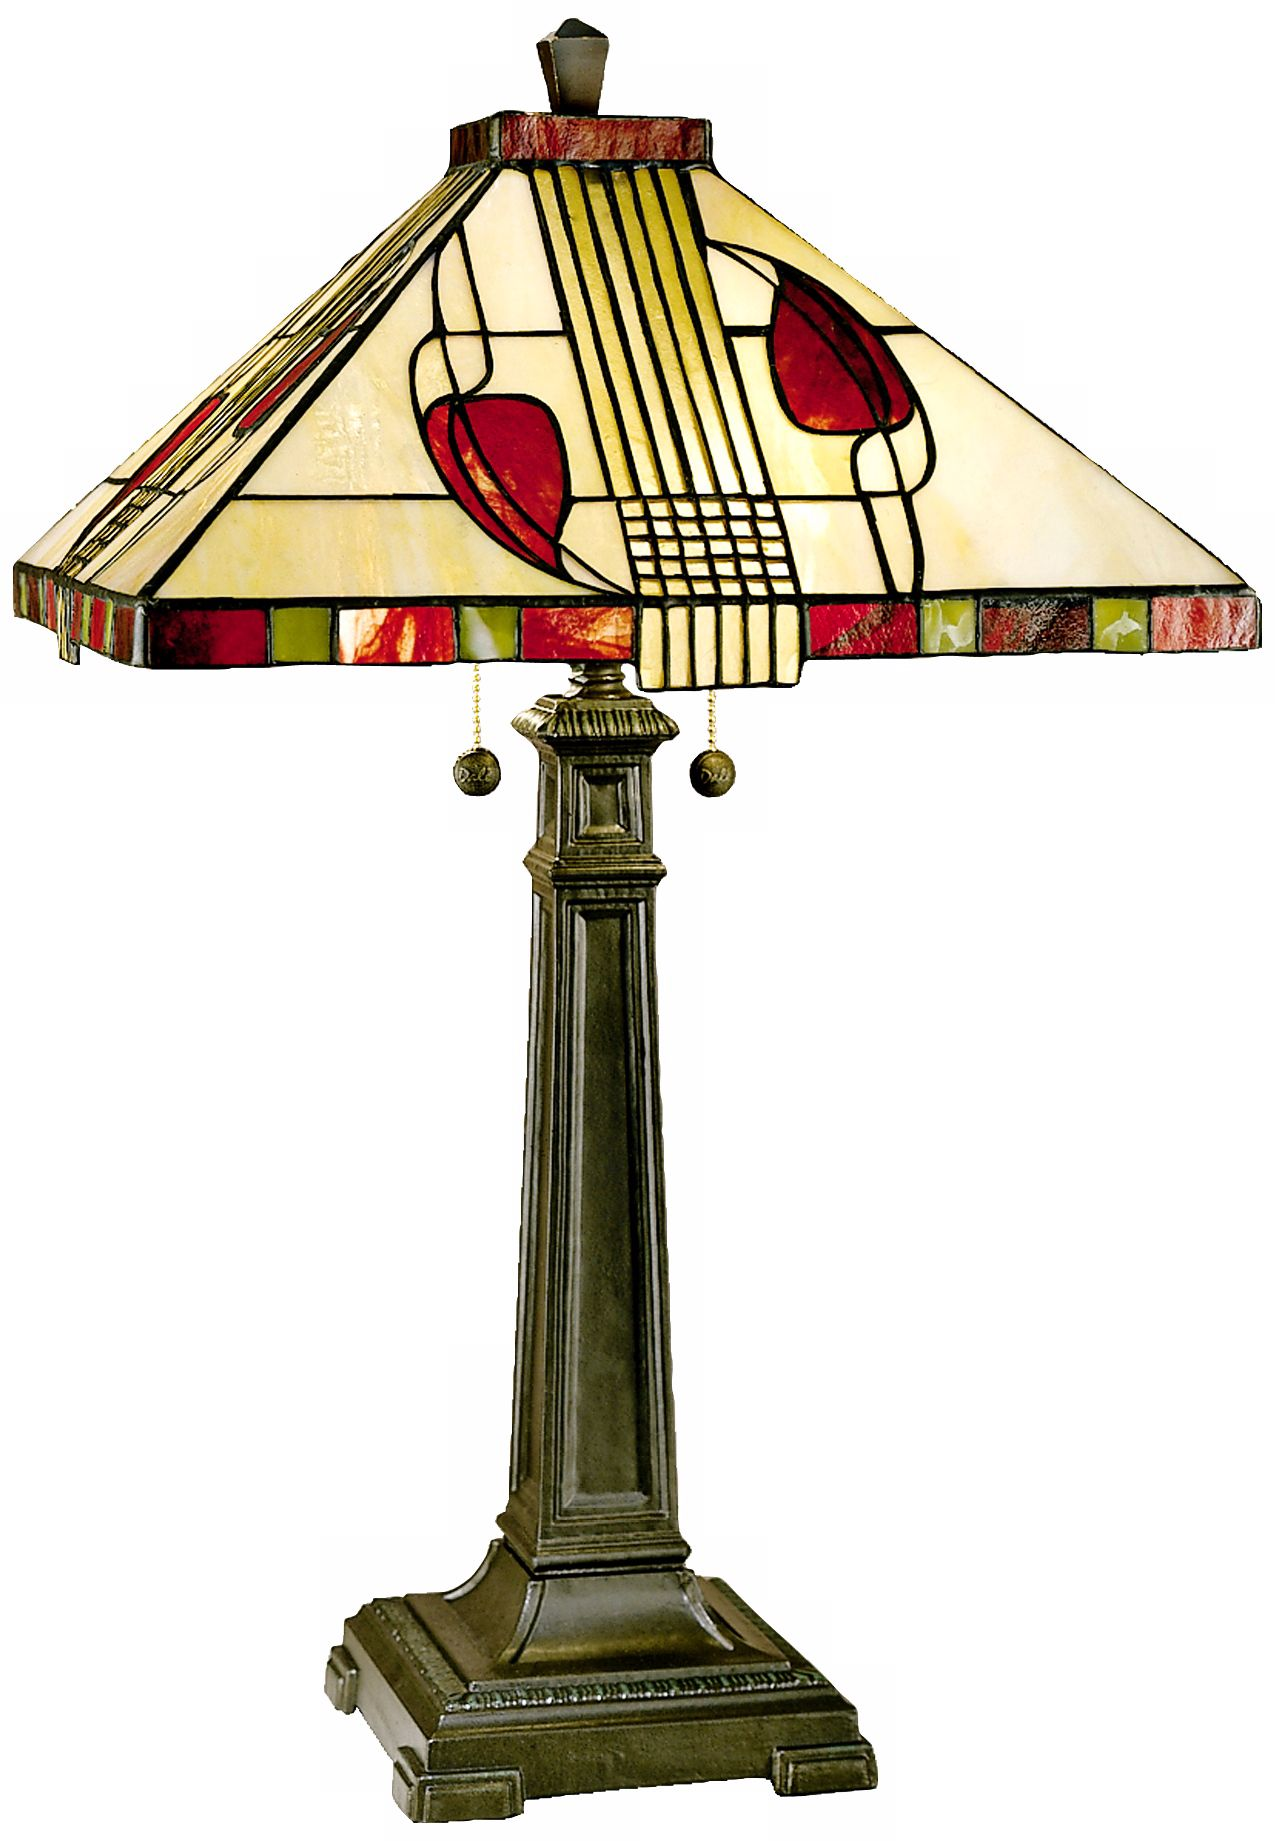 henderson tall cream glass dale tiffany table lamp - Tiffany Table Lamps